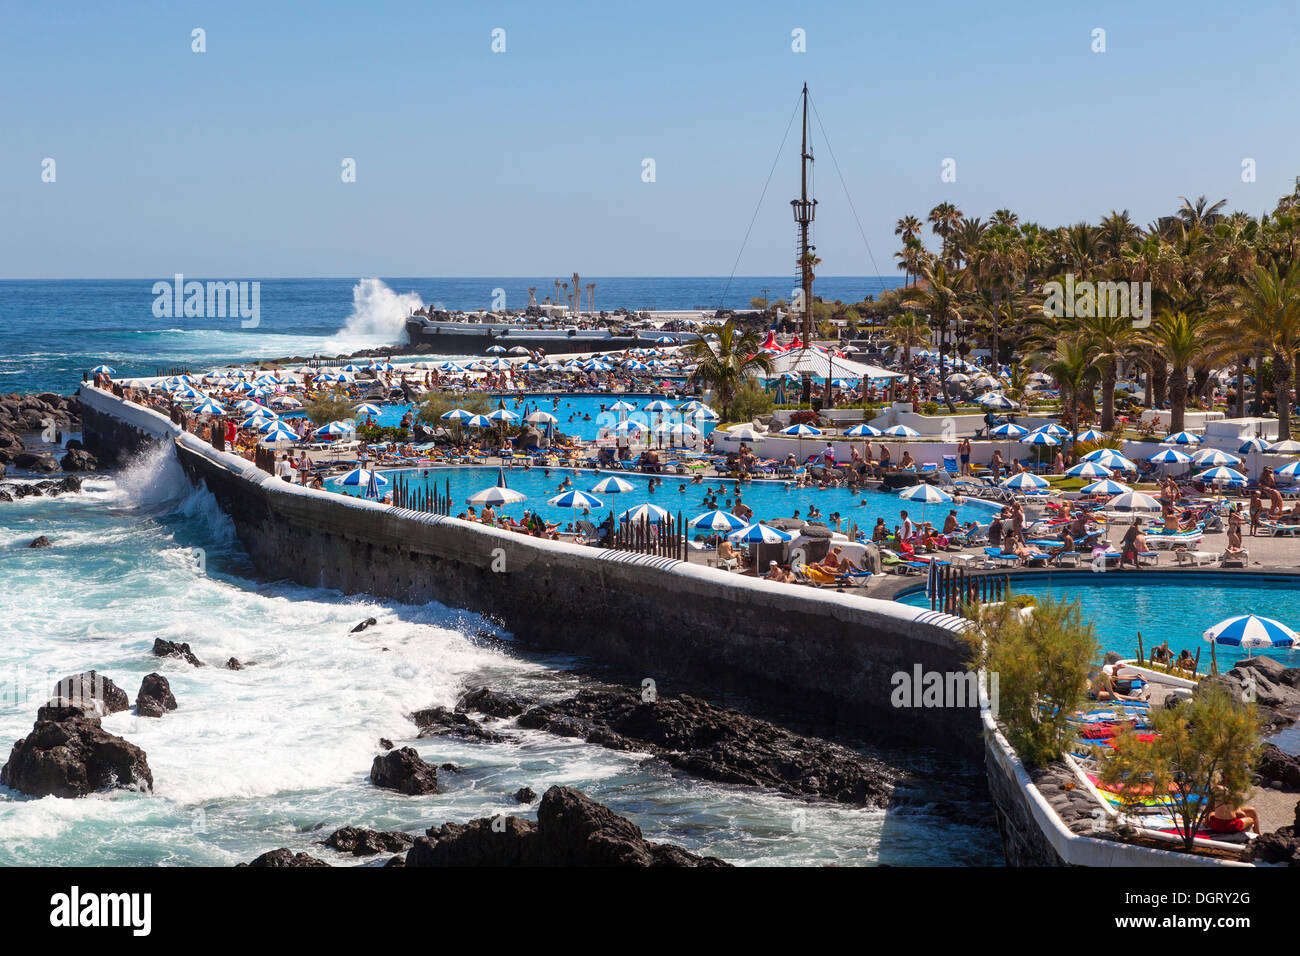 Playa de martianez designed by cesar manrique puerto de la cruz stock photo royalty free - Playa puerto de la cruz tenerife ...